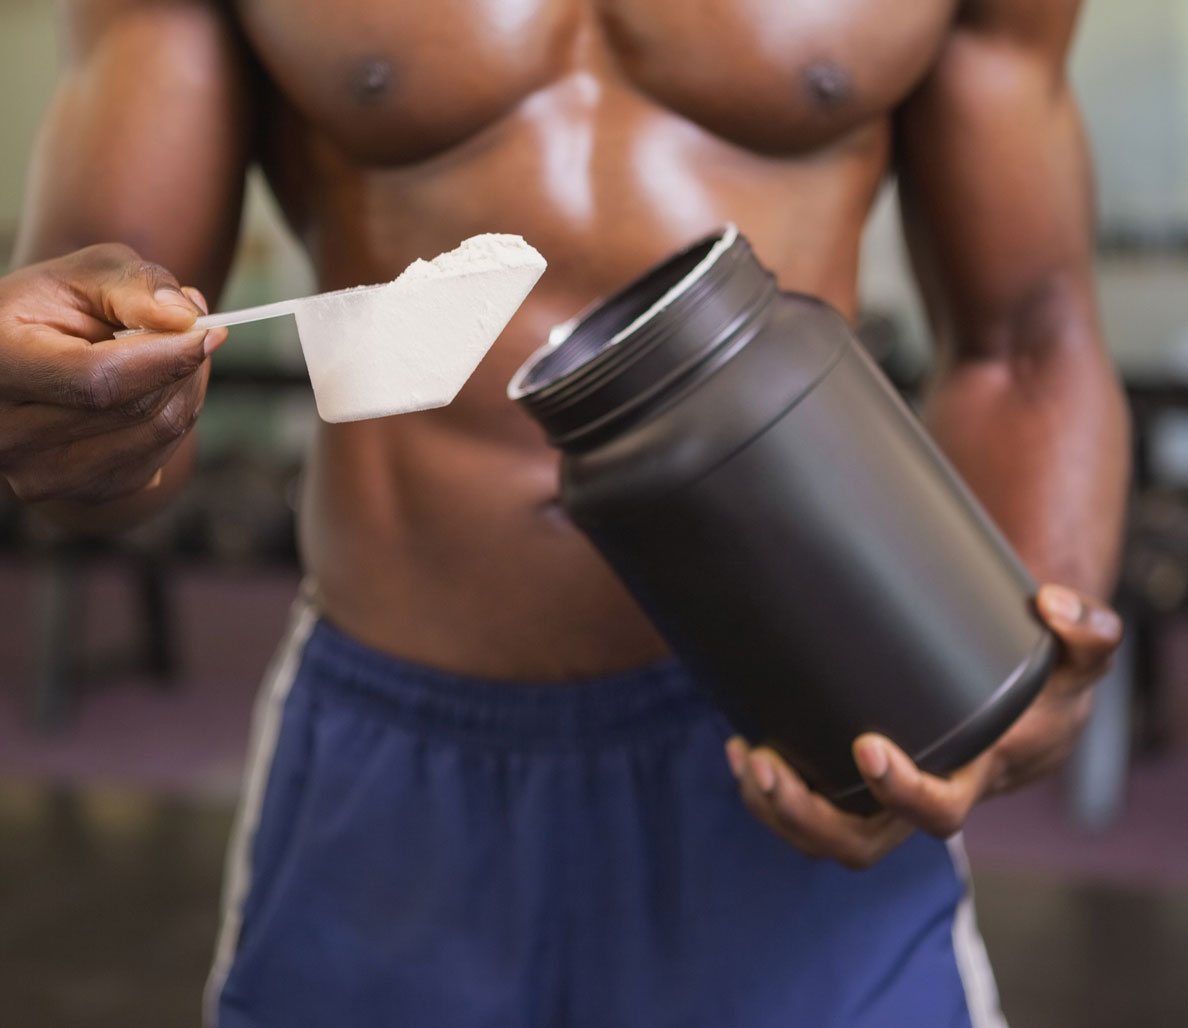 The Fit 5: Pre- and Post-Workout Nutrition